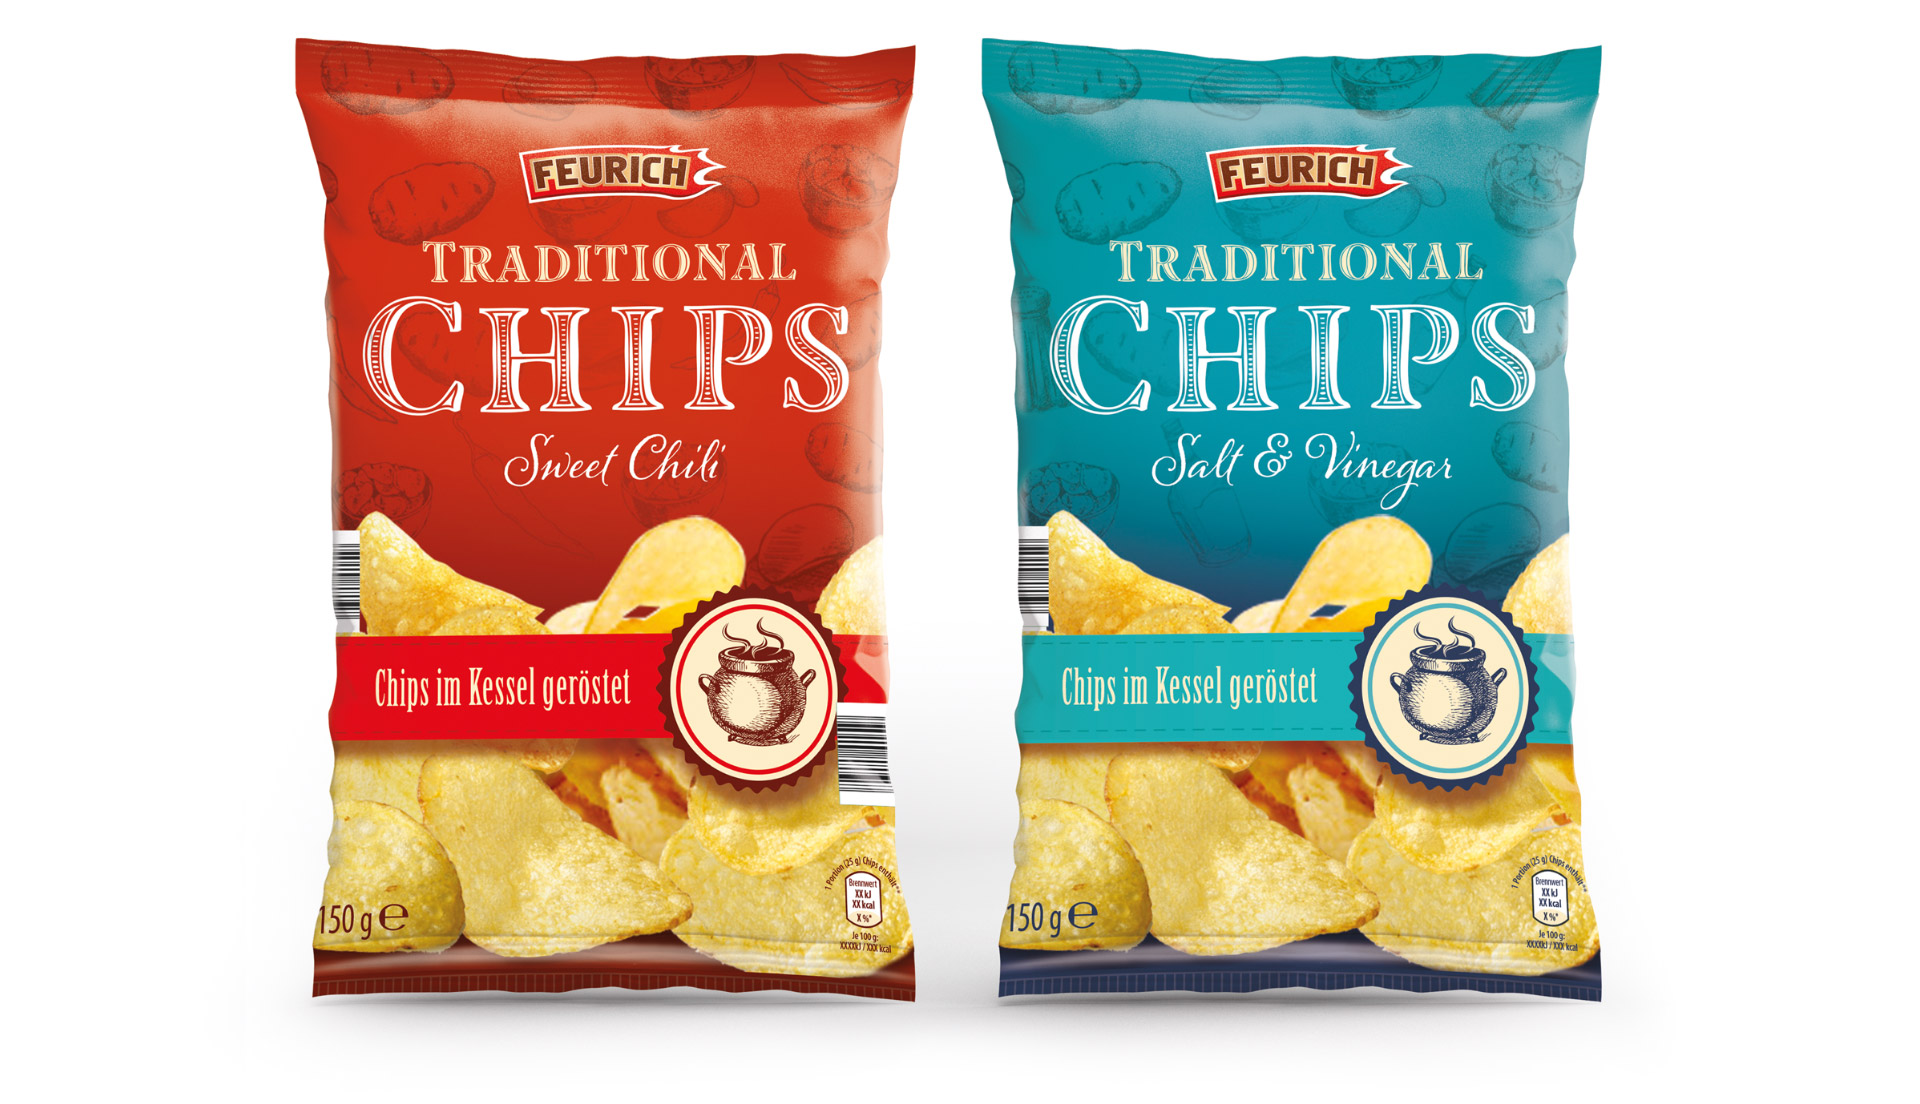 Feurich Traditional Crisp Packet Design By Louise Russell Design